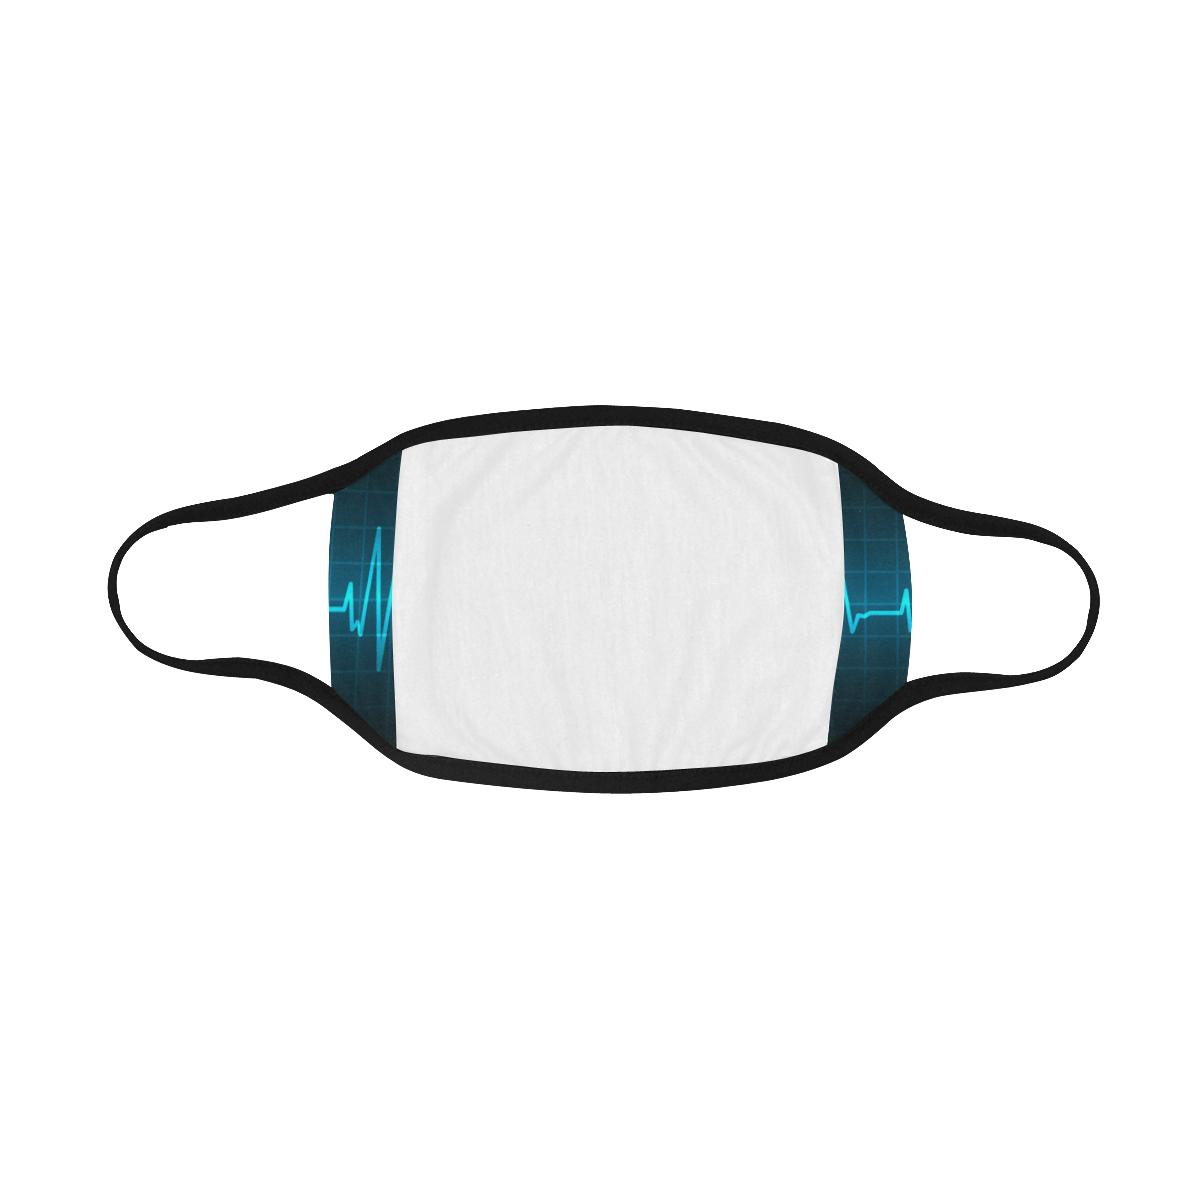 Cardio Mouthcover Custom Dust Cover Mouth Mask